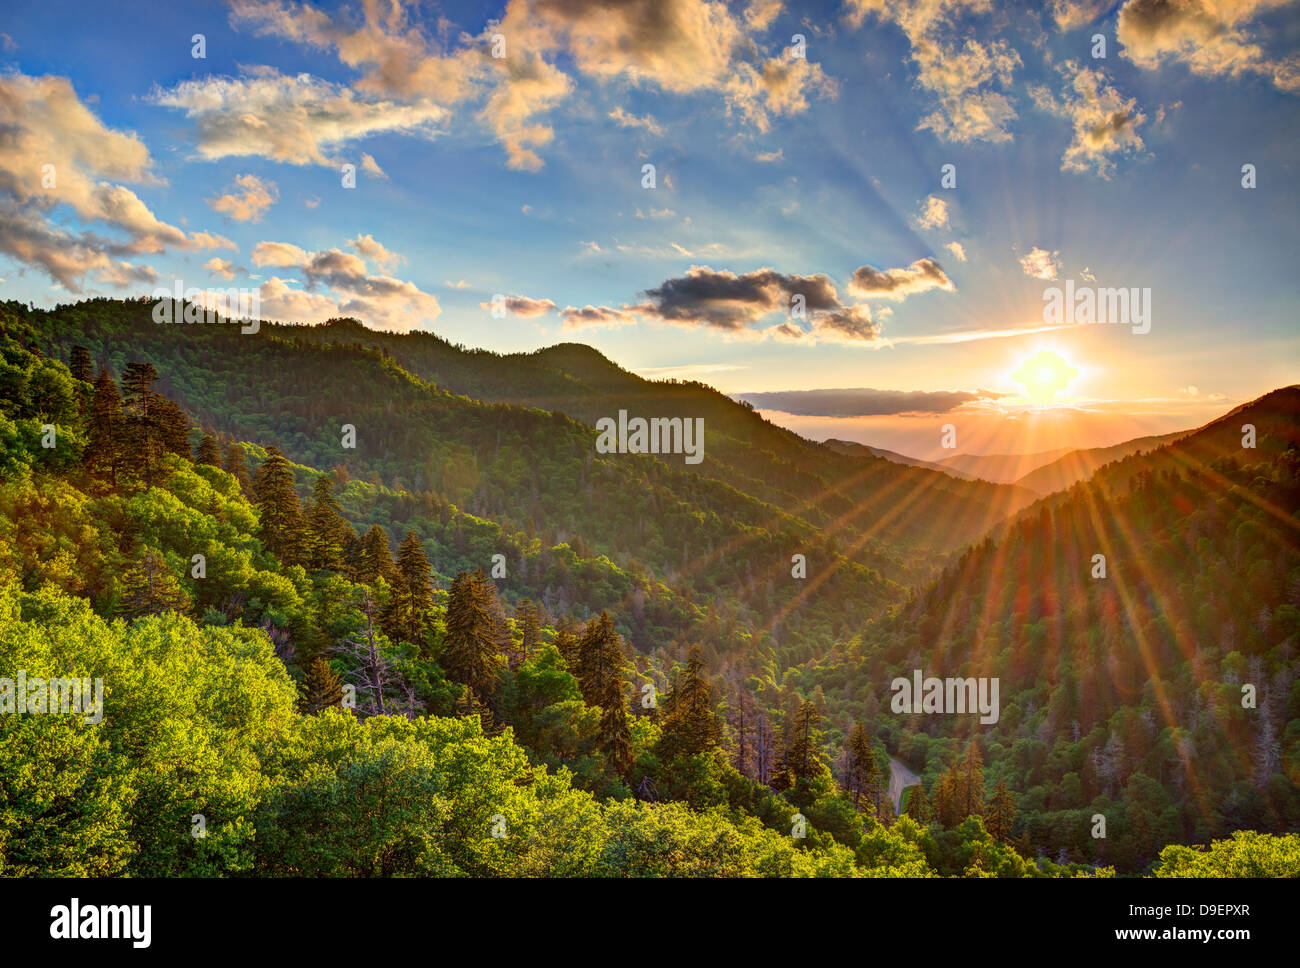 Newfound Gap in the Smoky Mountains near Gatlinburg, Tennessee. - Stock Image